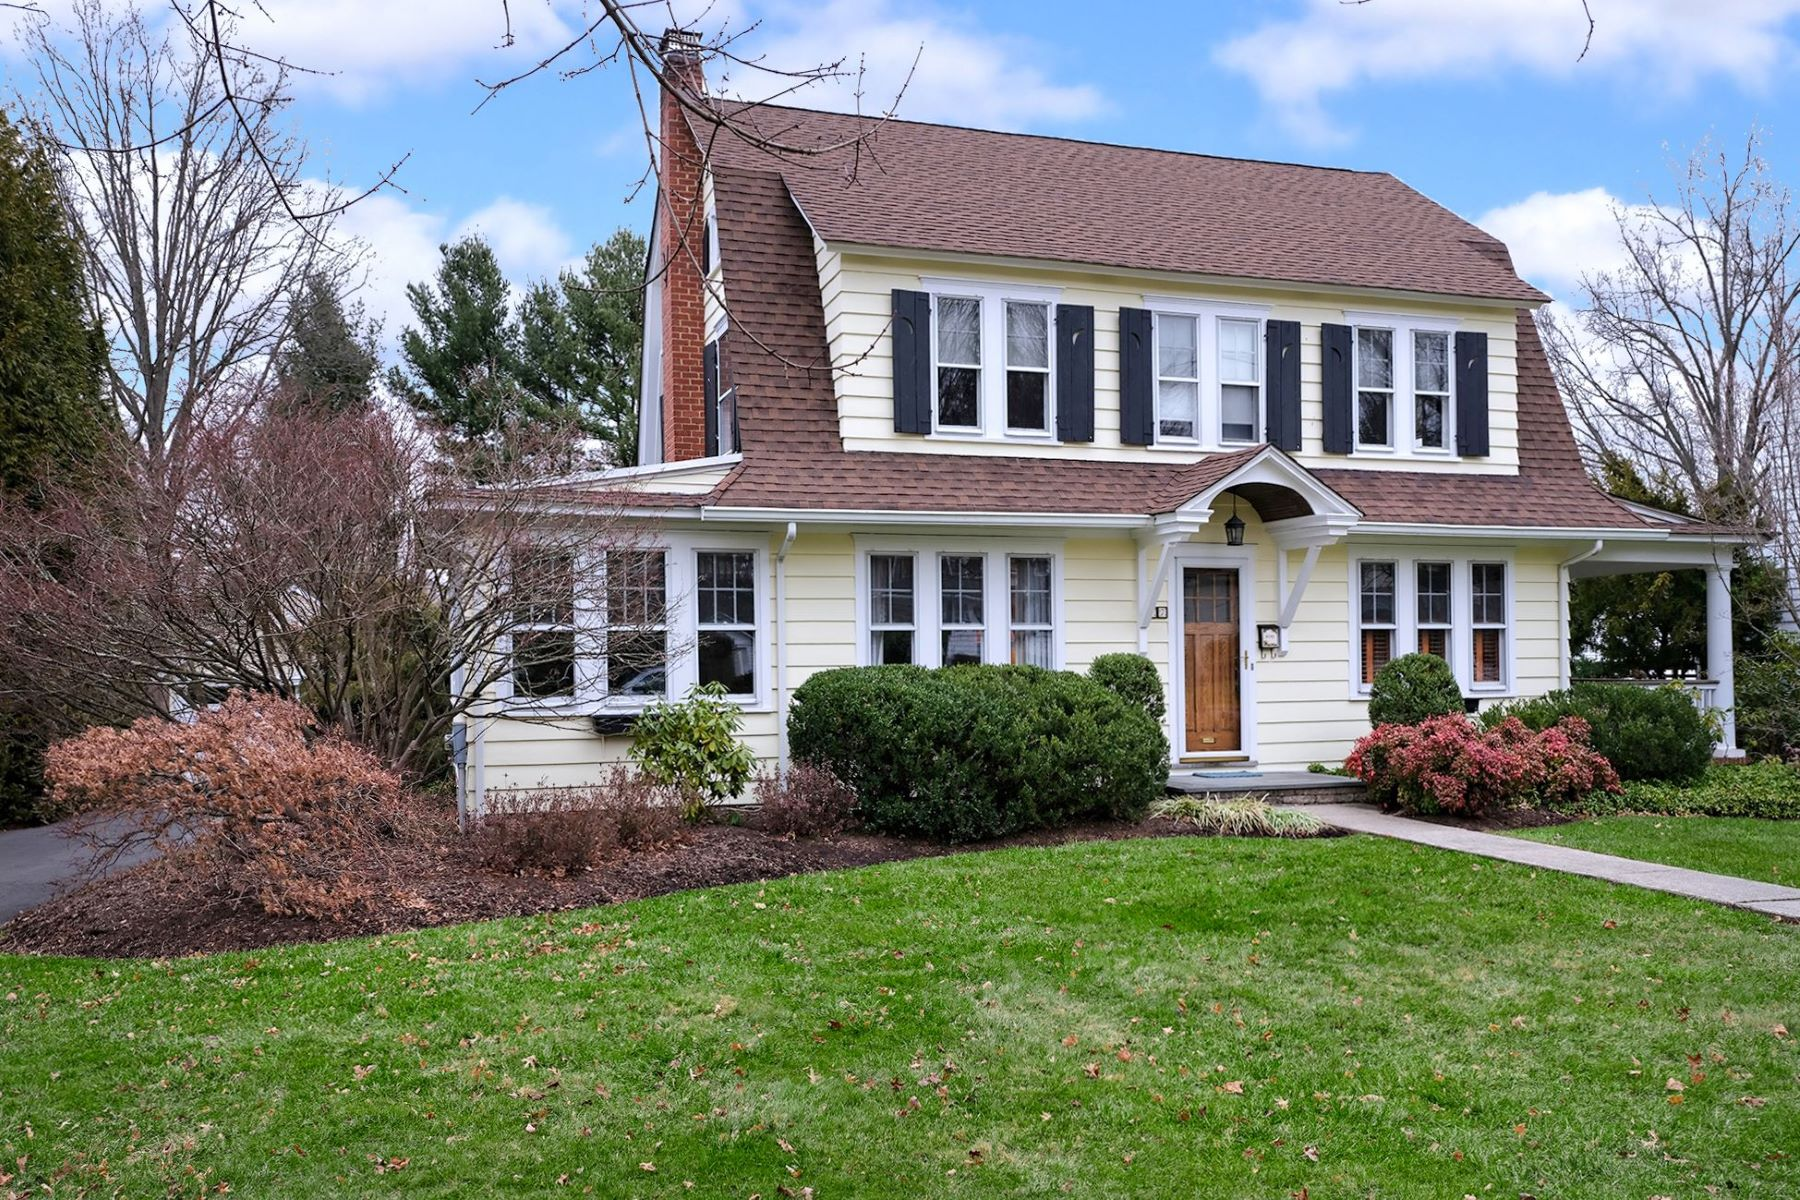 Single Family Homes para Venda às Charming Dutch Colonial On A Premier Tree-lined Street 17 East Welling Avenue, Pennington, Nova Jersey 08534 Estados Unidos